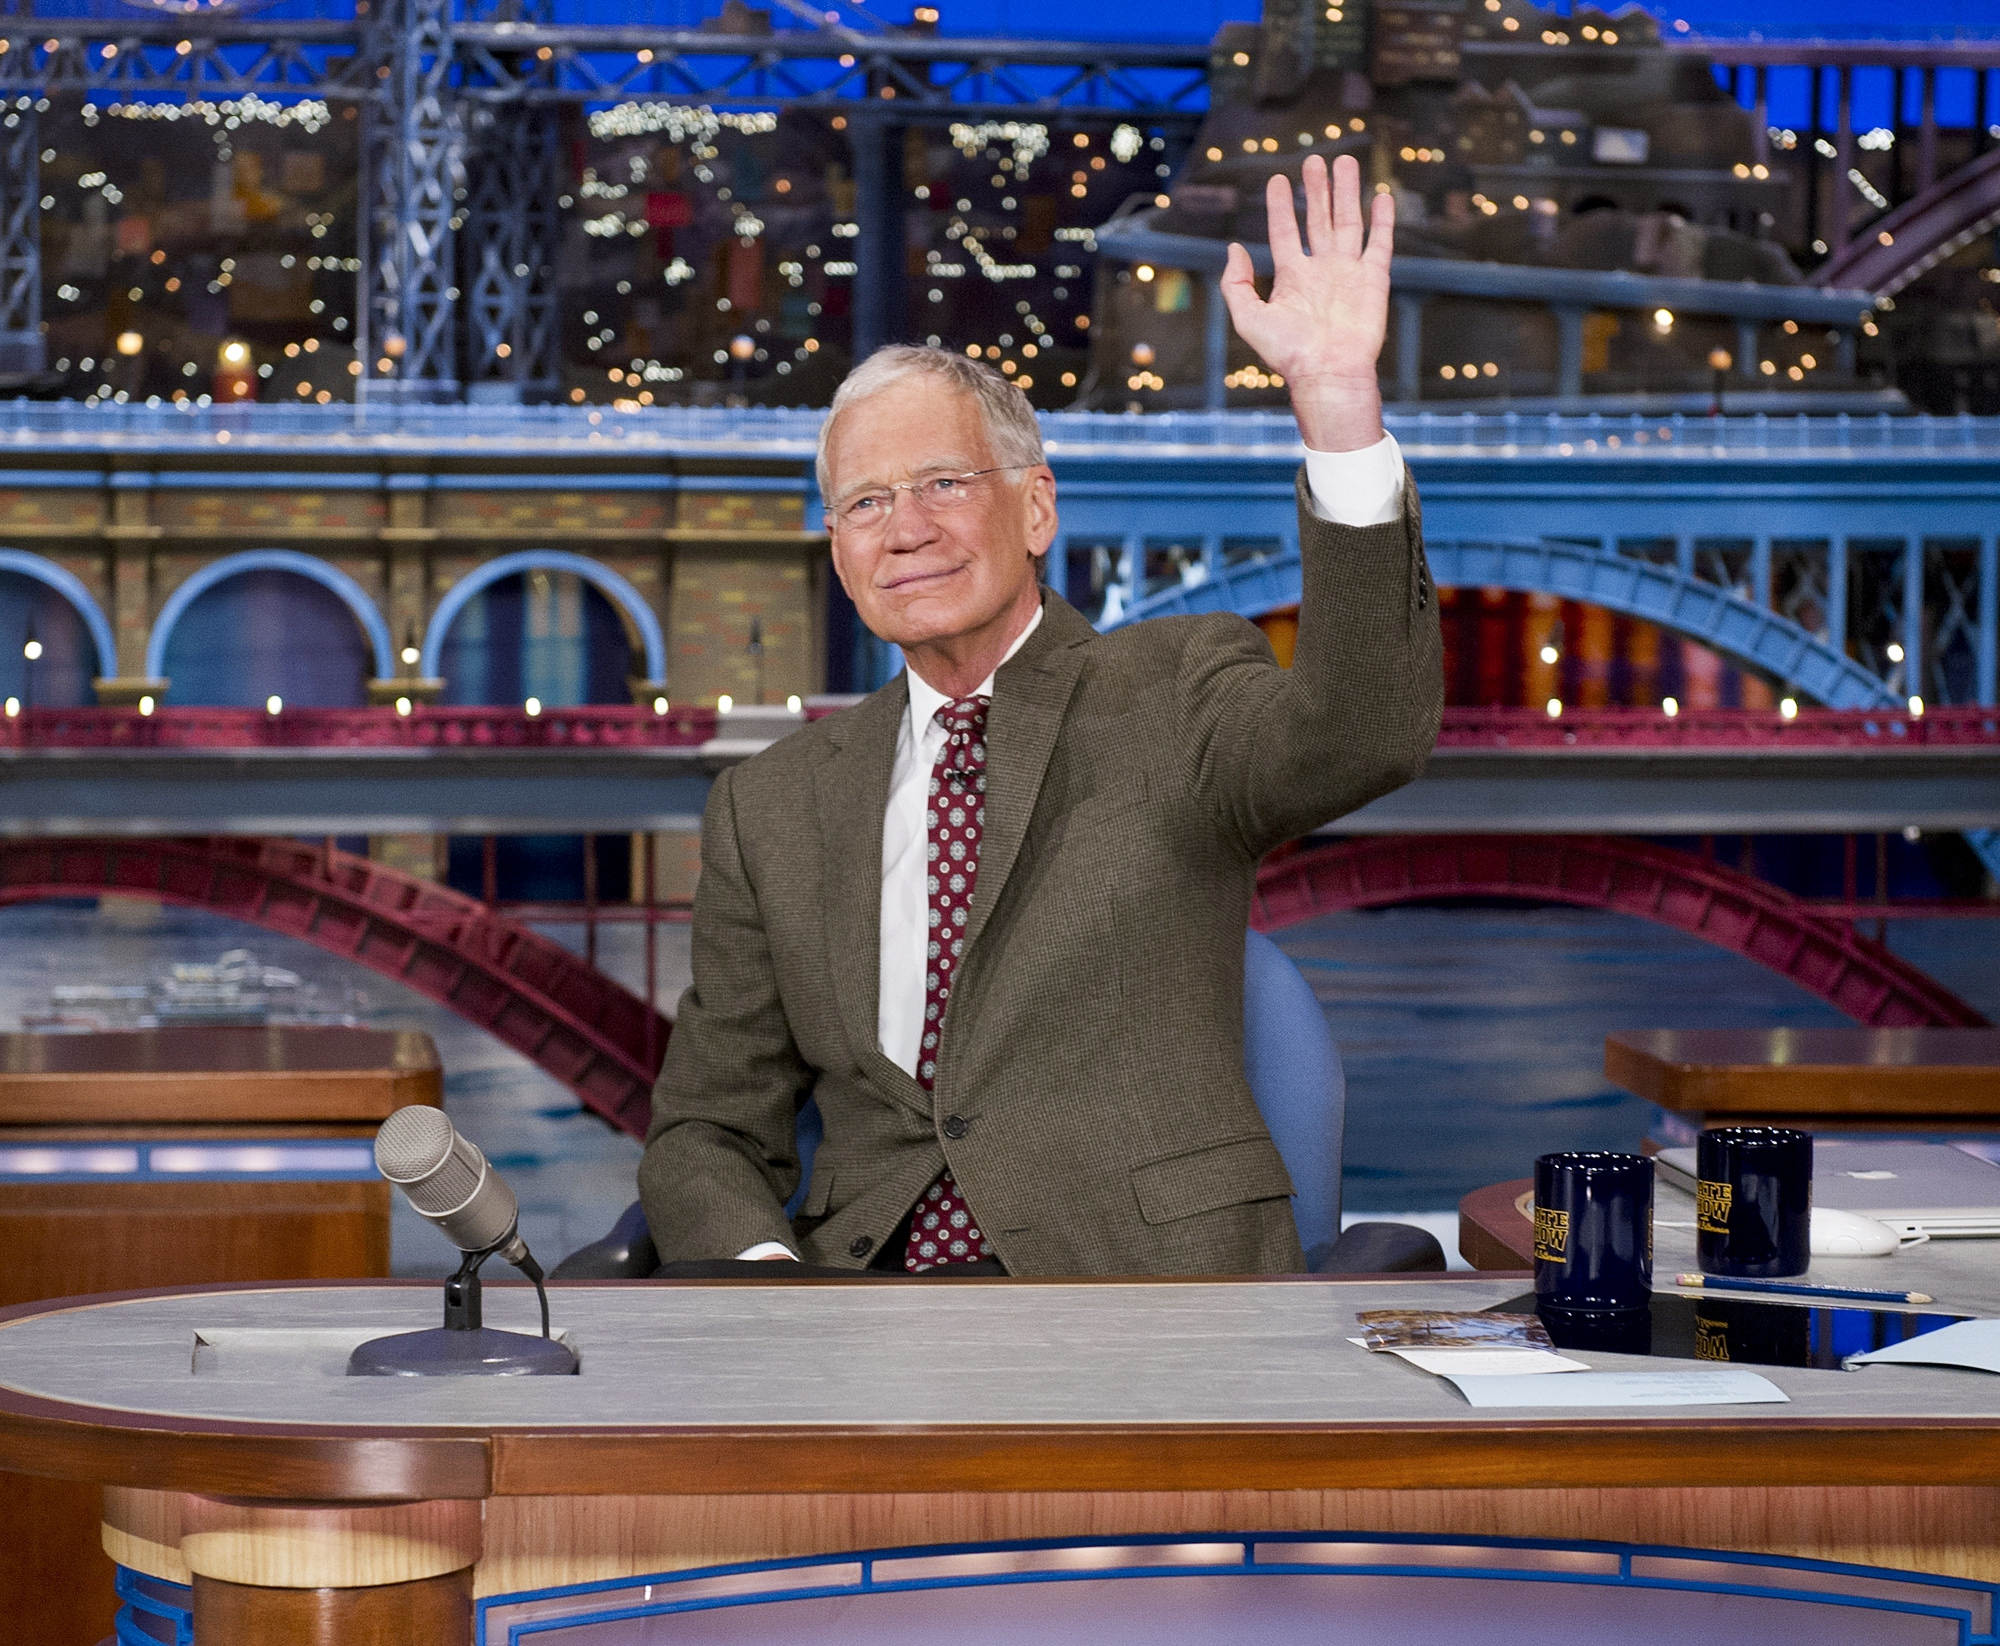 David Letterman waves to his audience April 3, 2014, after announcing that he intends to retire this year.